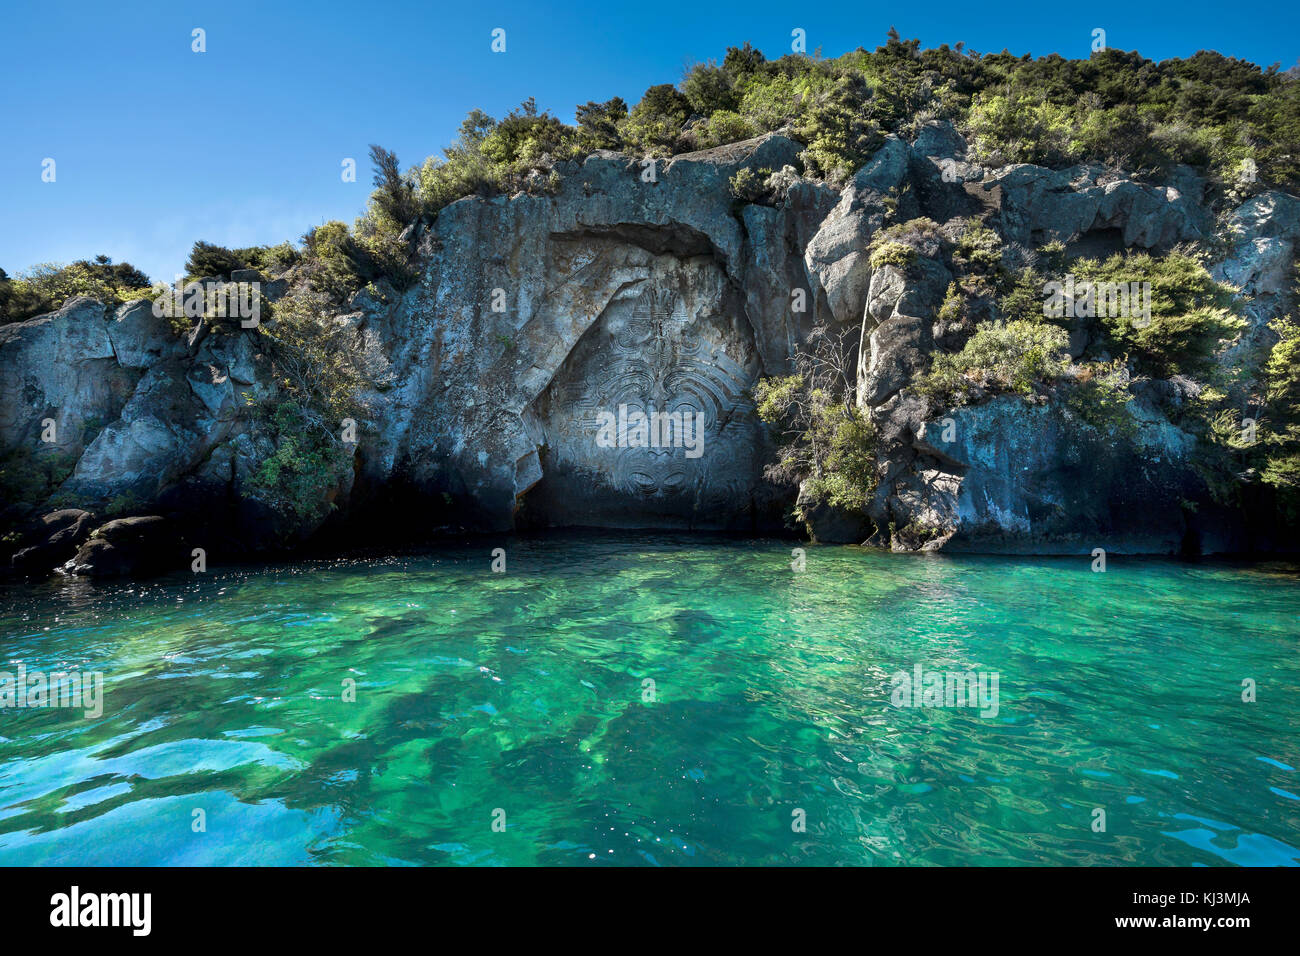 Maori rock carvings on lake taupo new zealand stock photo